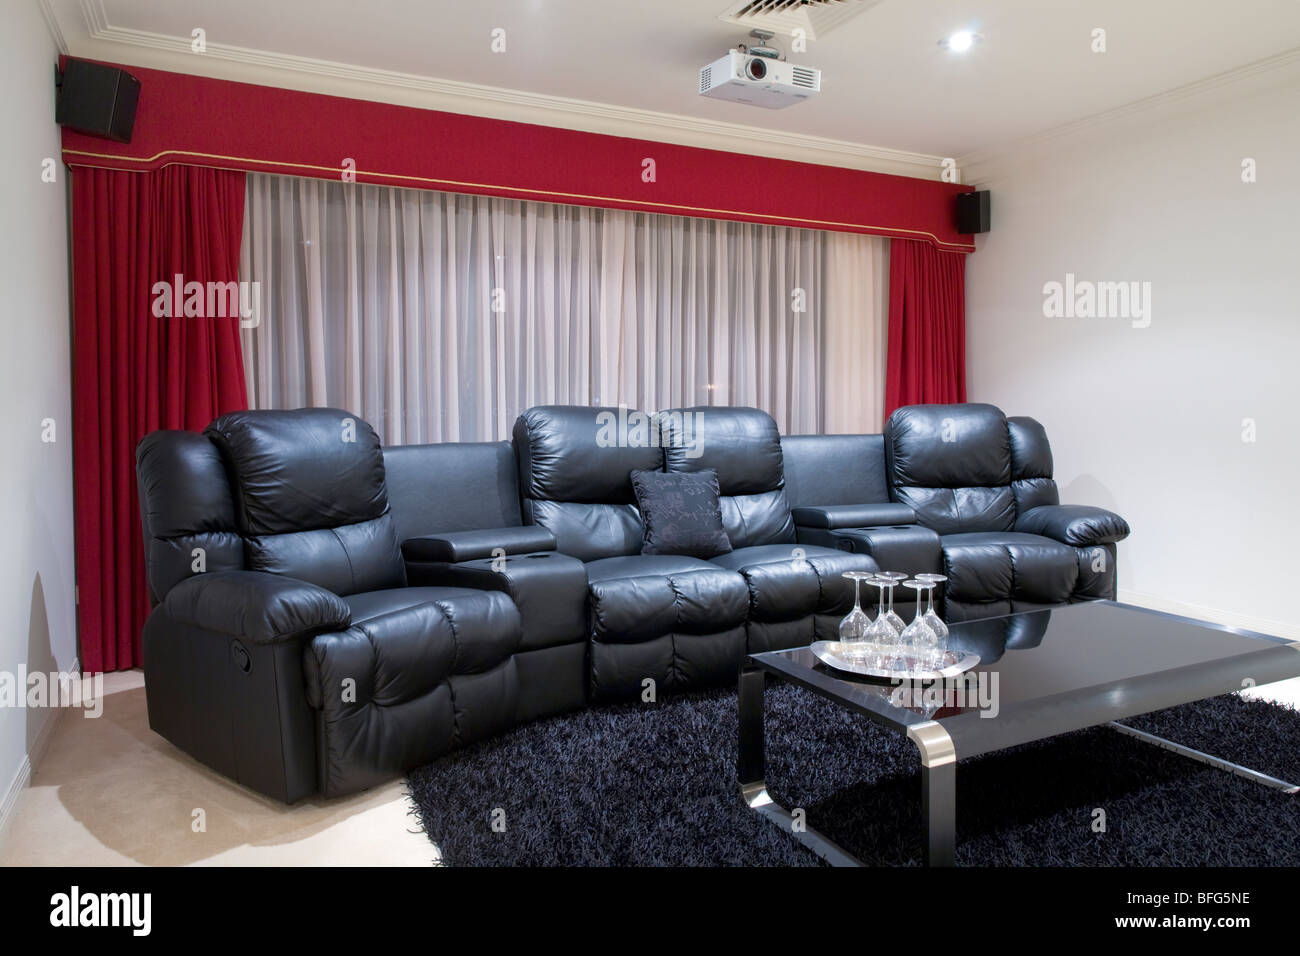 home theater room with black leather recliner chairs red curtains